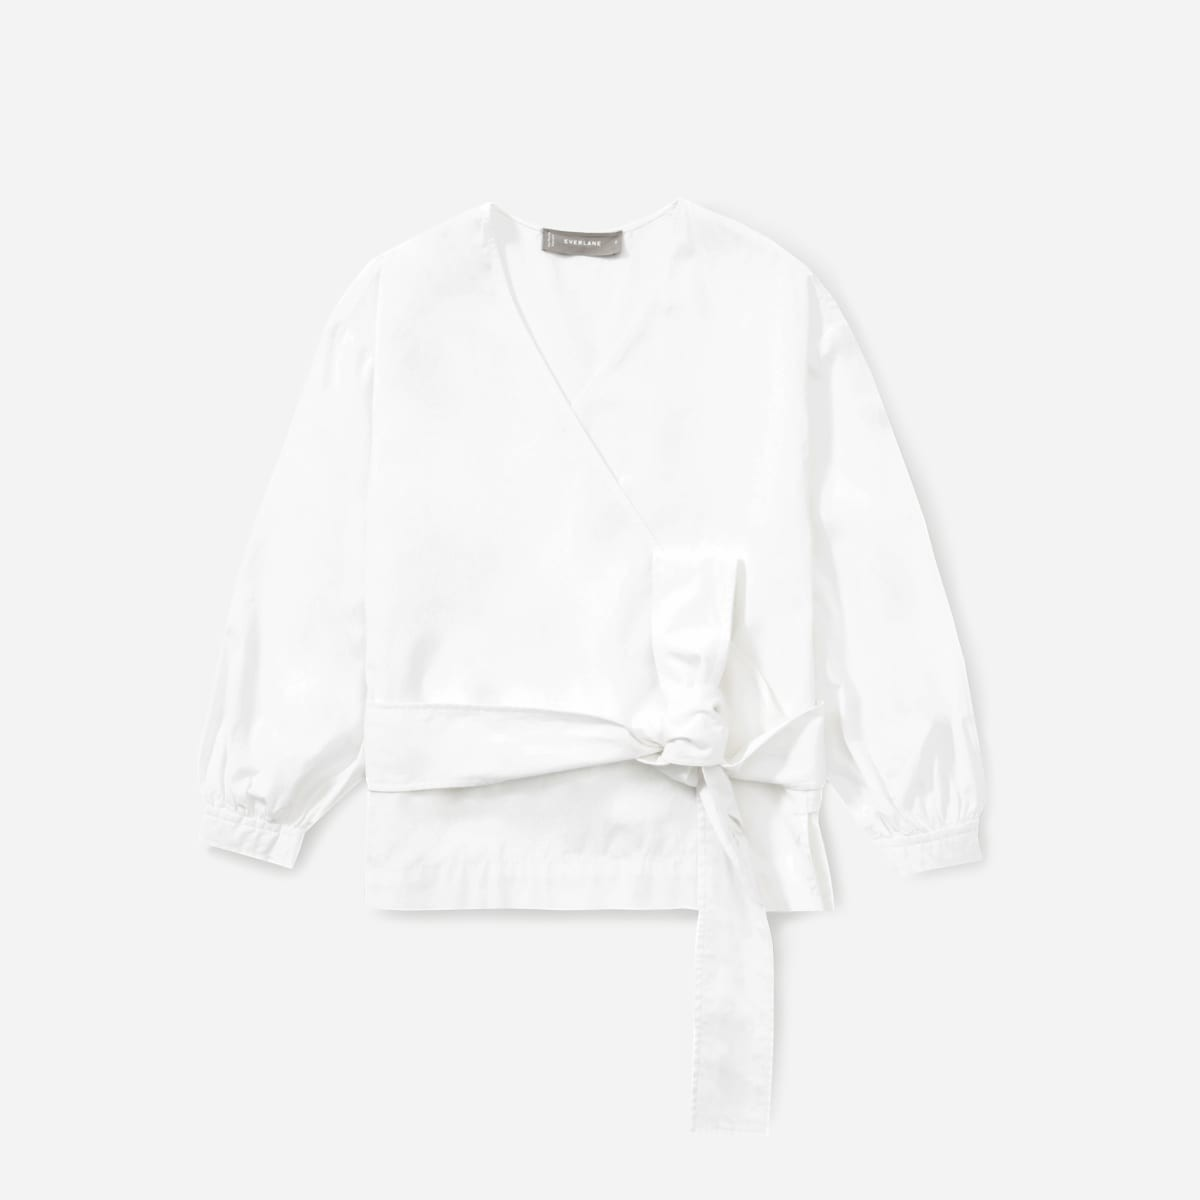 Product Image 1 - Everlane Wrap Top Size US6, never